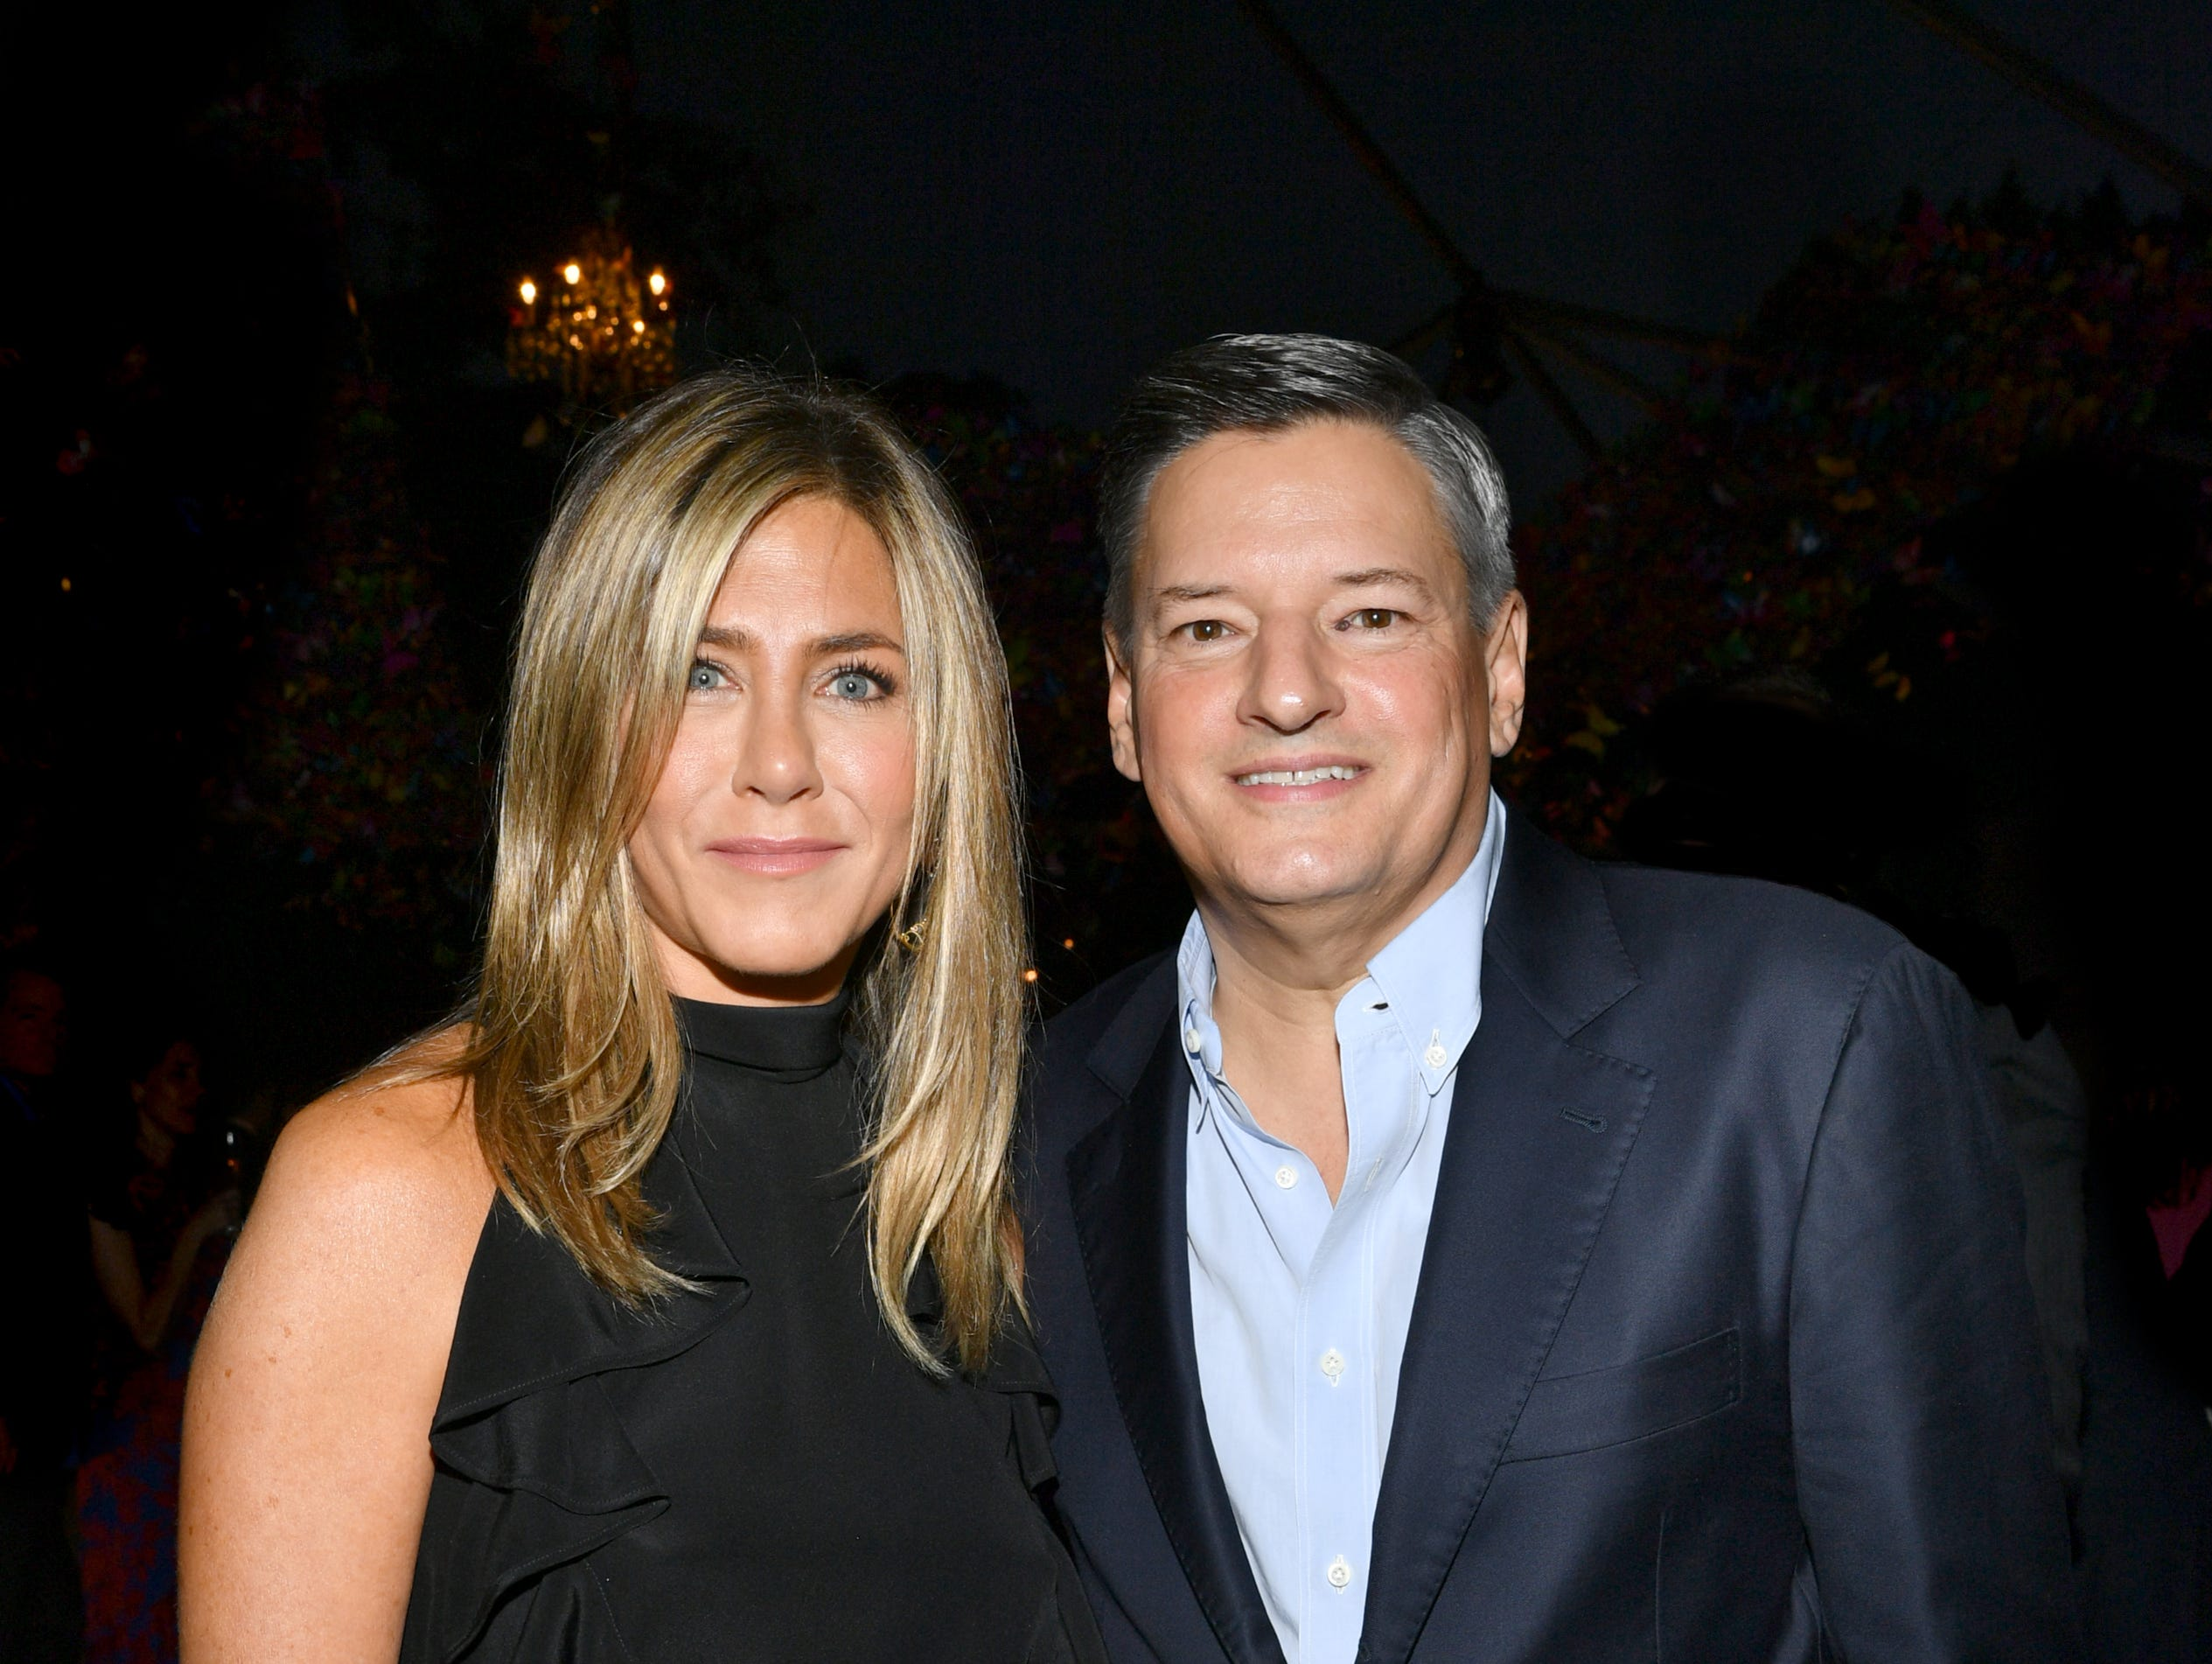 LOS ANGELES, CA - SEPTEMBER 15: Jennifer Aniston and  Netflix Chief Content Officer Ted Sarandos attend Ted Sarandos' 2018 Annual Netflix Emmy Nominee Toast on September 15, 2018 in Los Angeles, California.  (Photo by Emma McIntyre/Getty Images for Netflix) ORG XMIT: 775217665 ORIG FILE ID: 1033982752